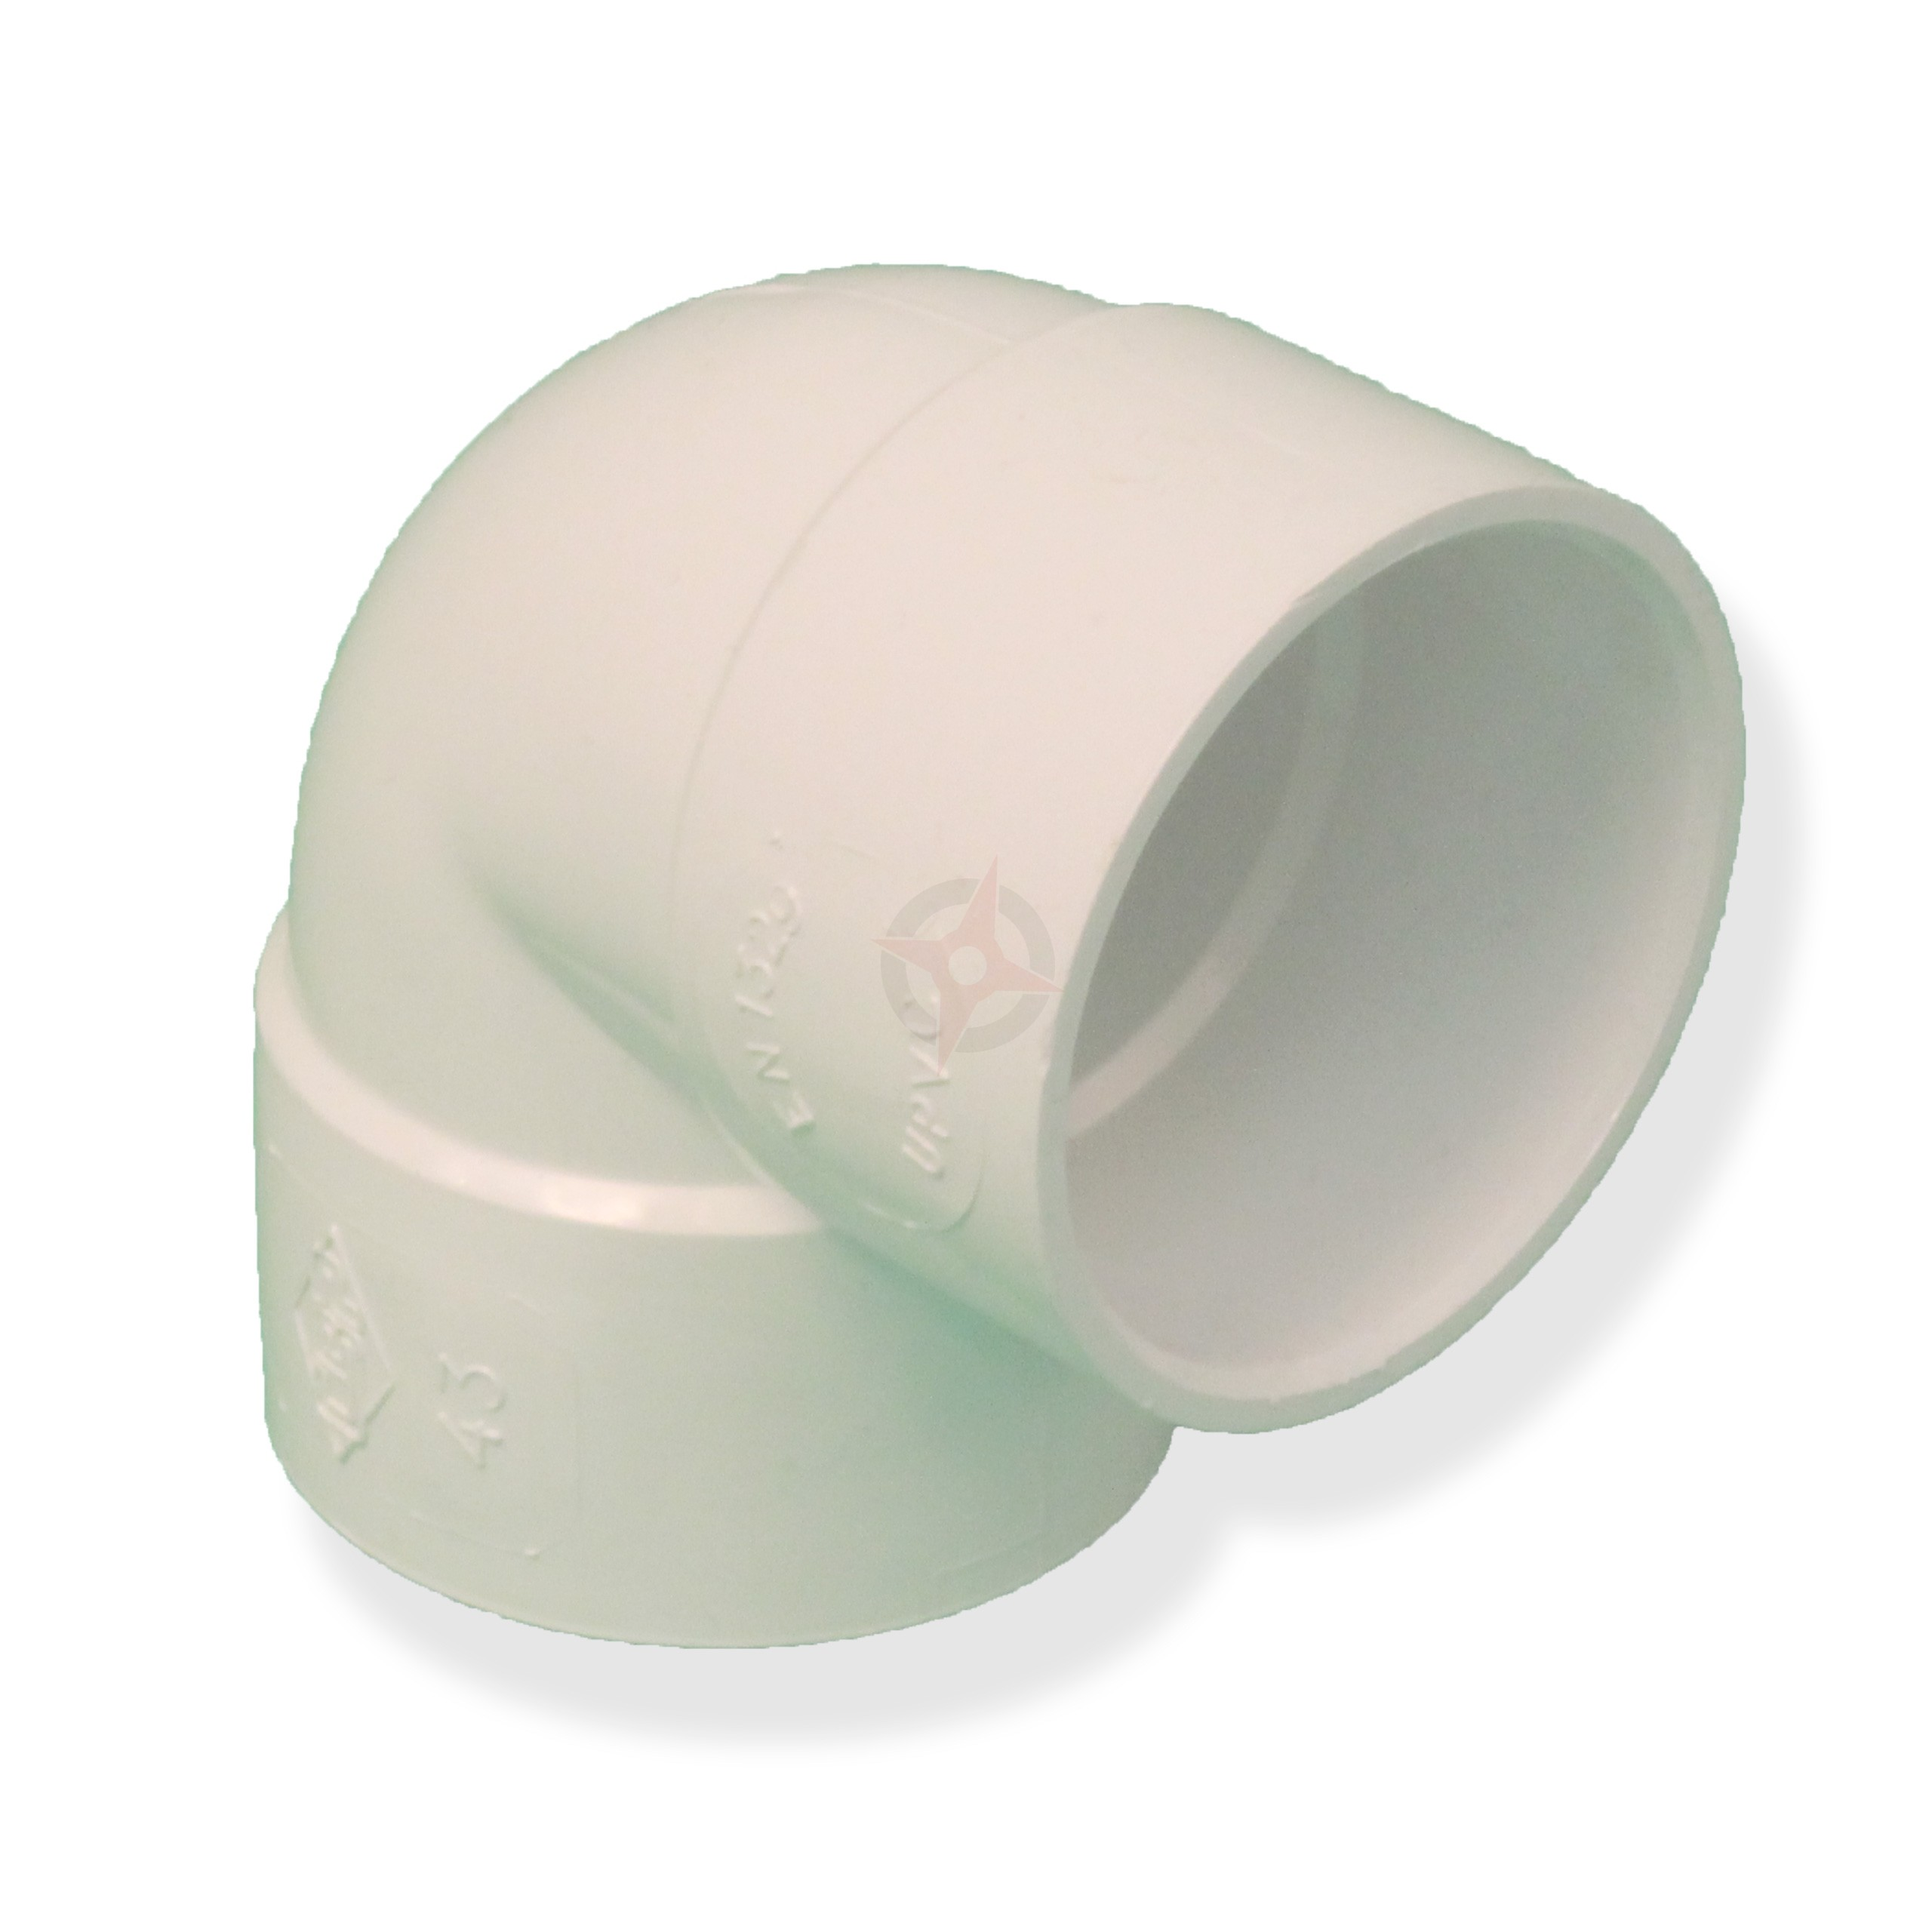 White 36mm Solvent Waste 90 Degree Knuckle Bend